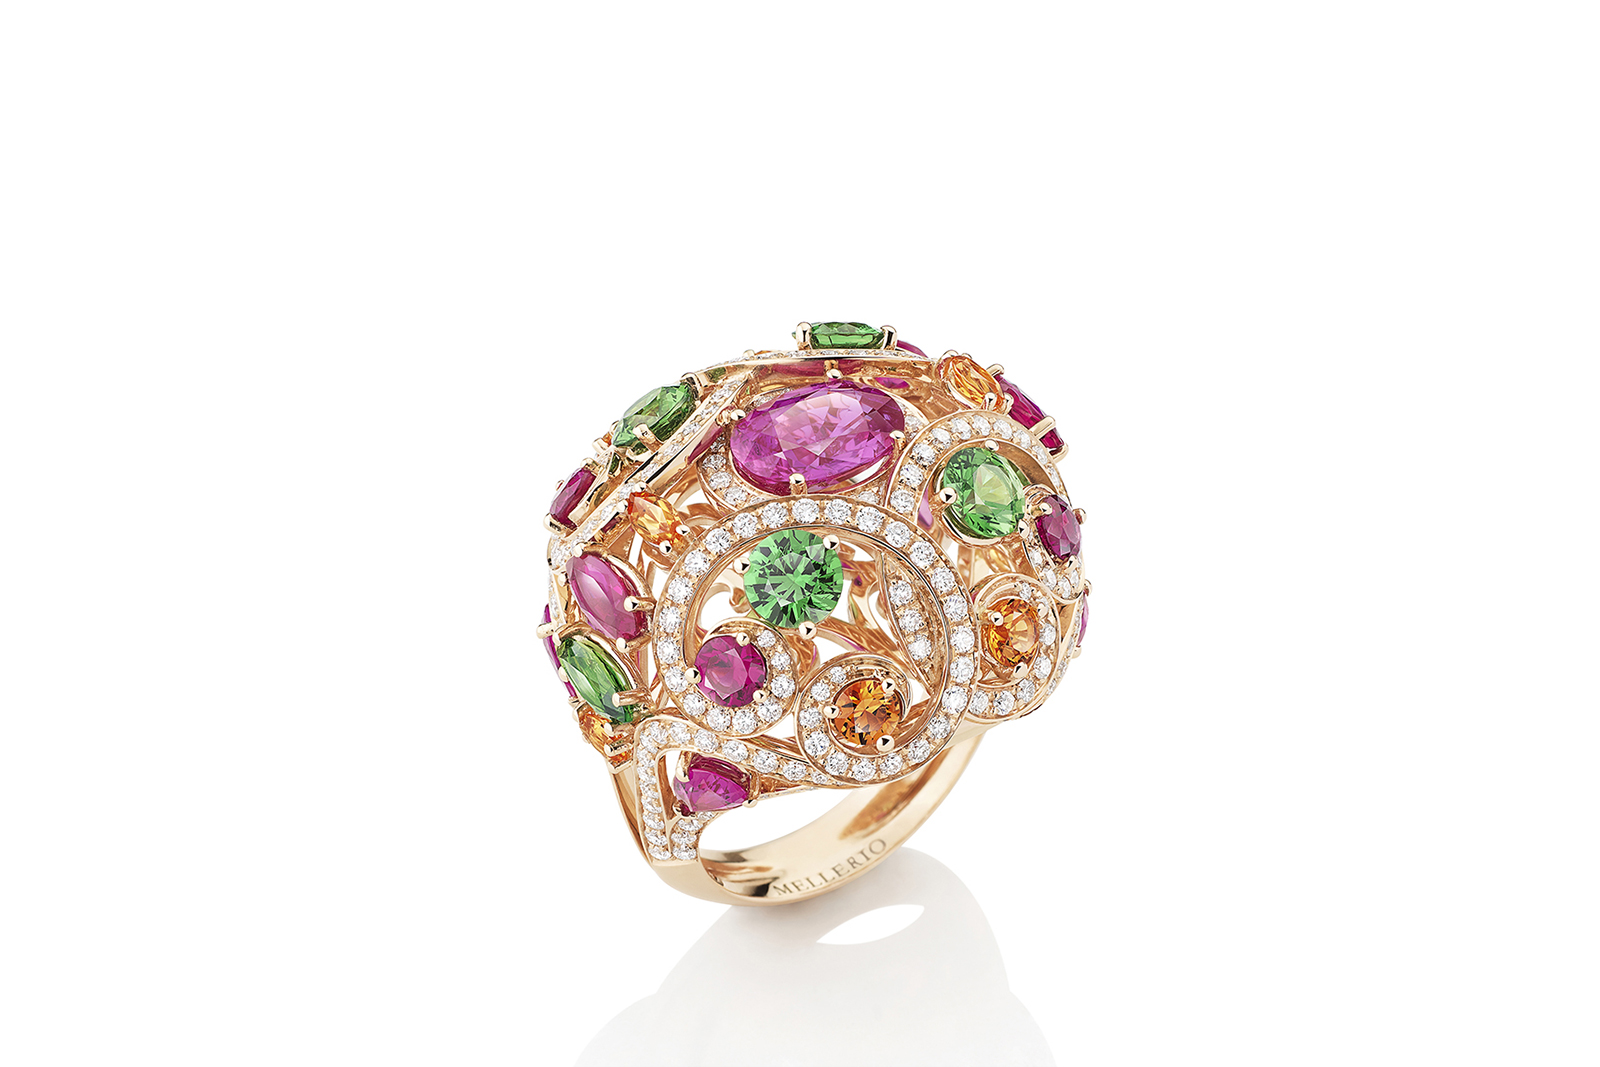 Mellerio dits Meller 'Millerfiora' ring from the 'Isola Bella' collection in pink sapphires, spessarite garnets, green tsavorites and diamonds